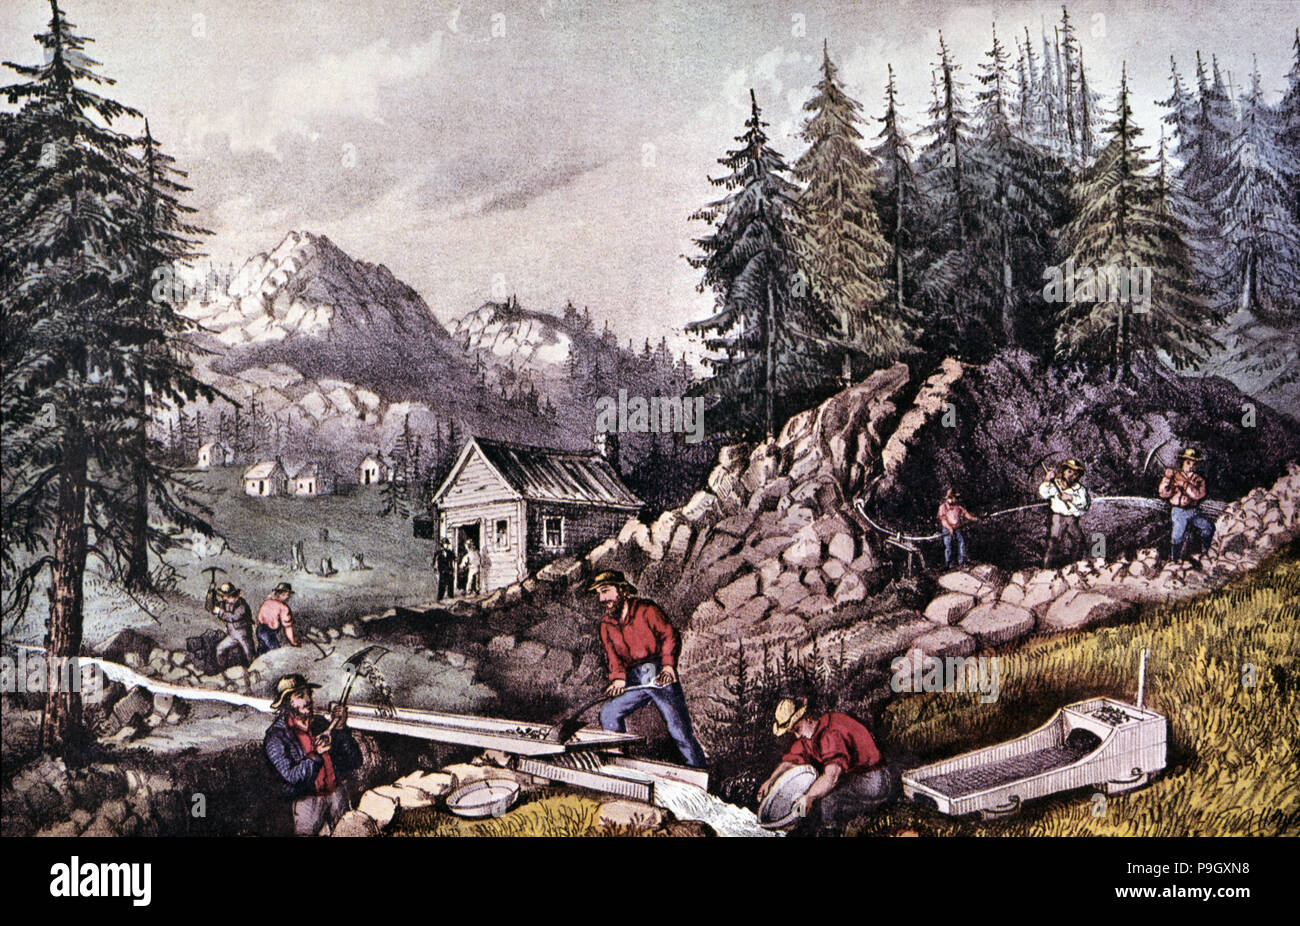 The Gold Rush (1848), gold mine in California, near Sutters Mill, engraving, 1870. - Stock Image